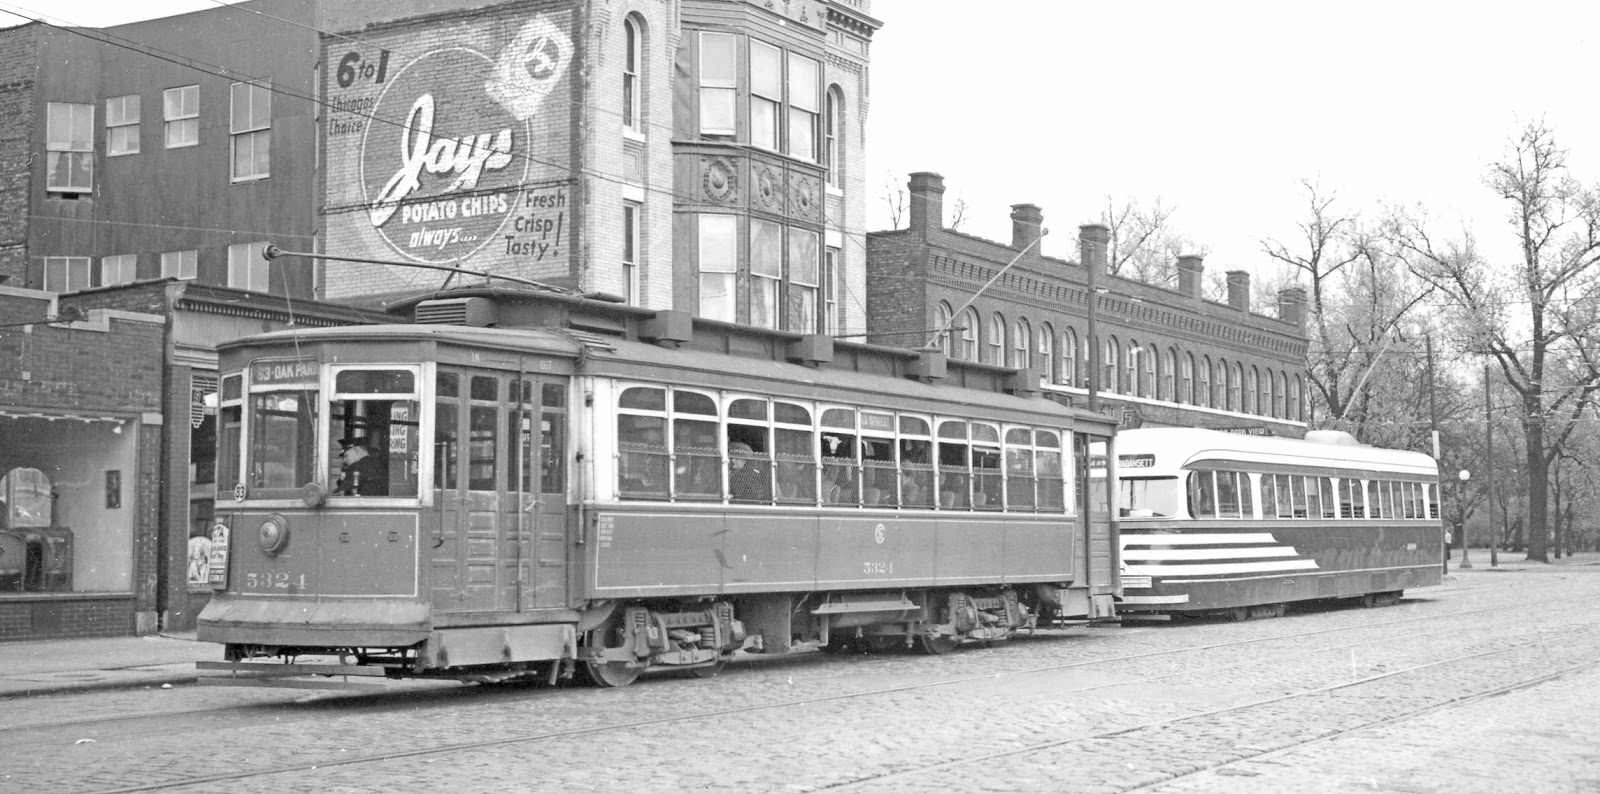 PHOTO - CHICAGO - 64TH W OF STONY ISLAND - CSL STREETCARS - PULLMAN AND  TIGER-STRIPED PCC - NOTE PAINTED WALL SIGN FOR JAYS POTATO CHIPS - 1940s -  EDITED ...